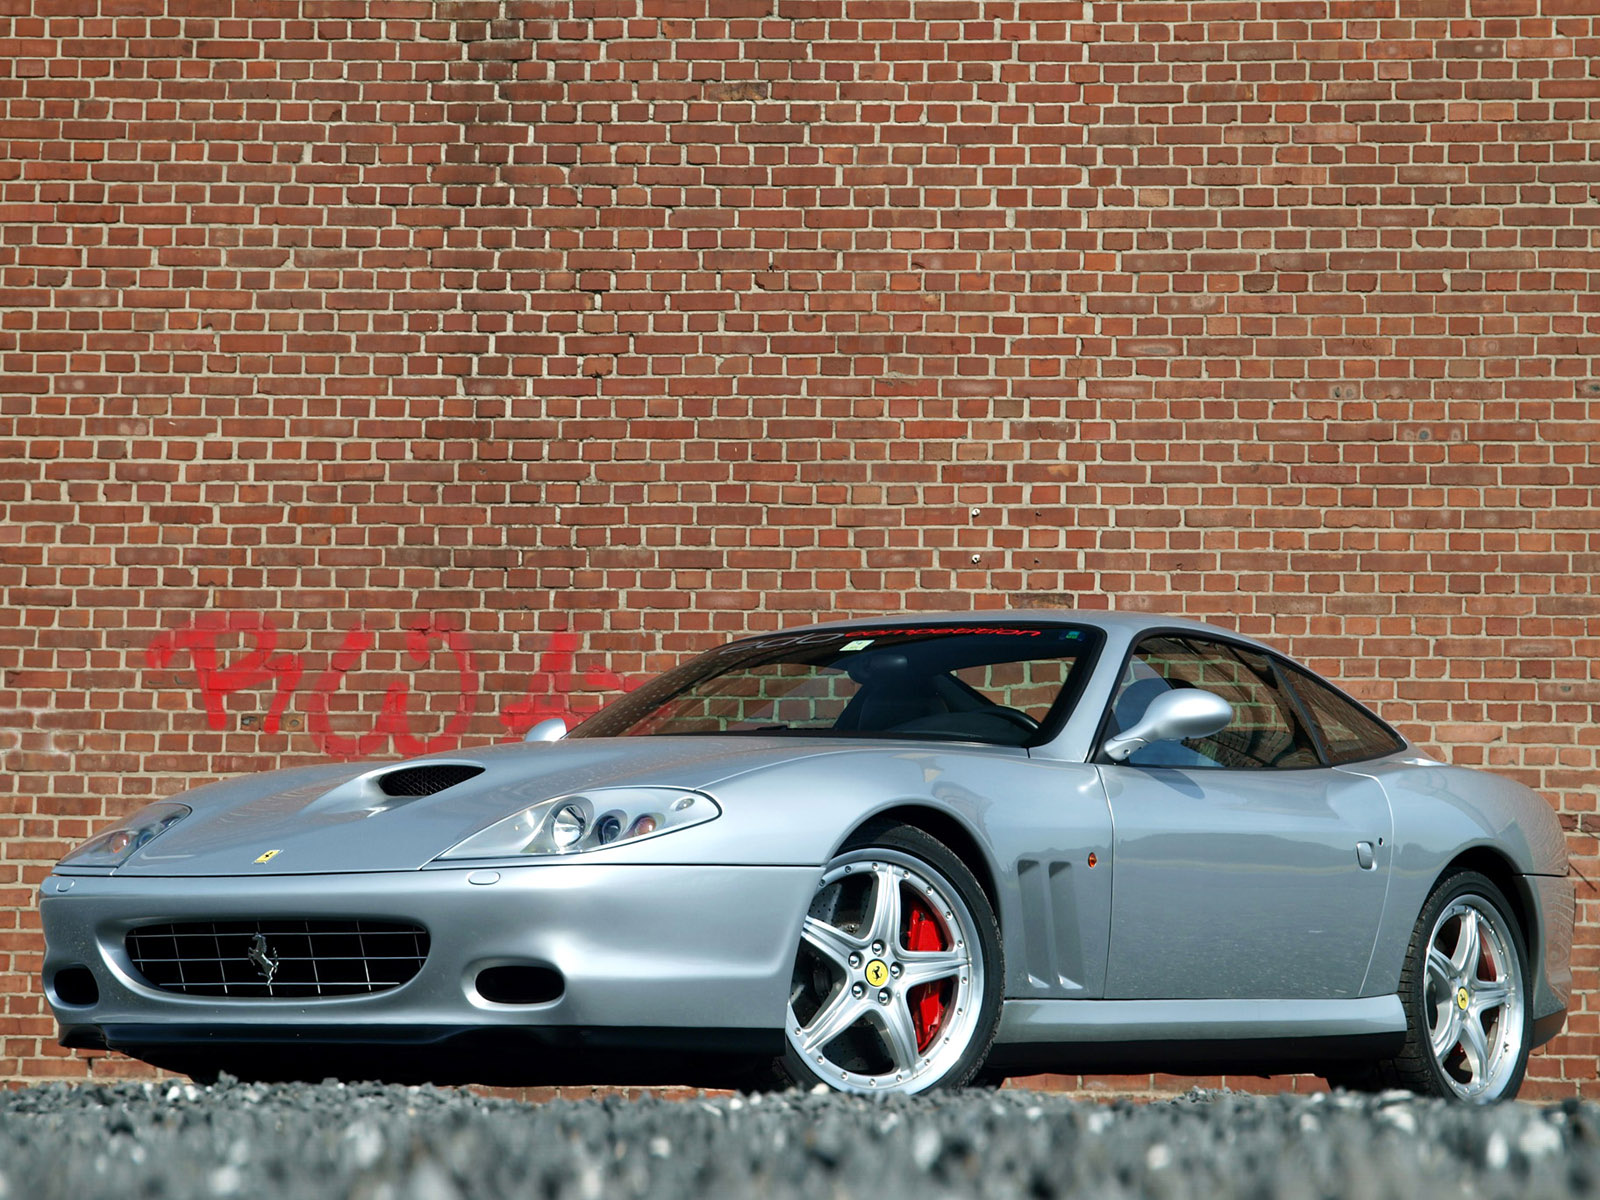 2017 Ferrari 575M Maranello photo - 2